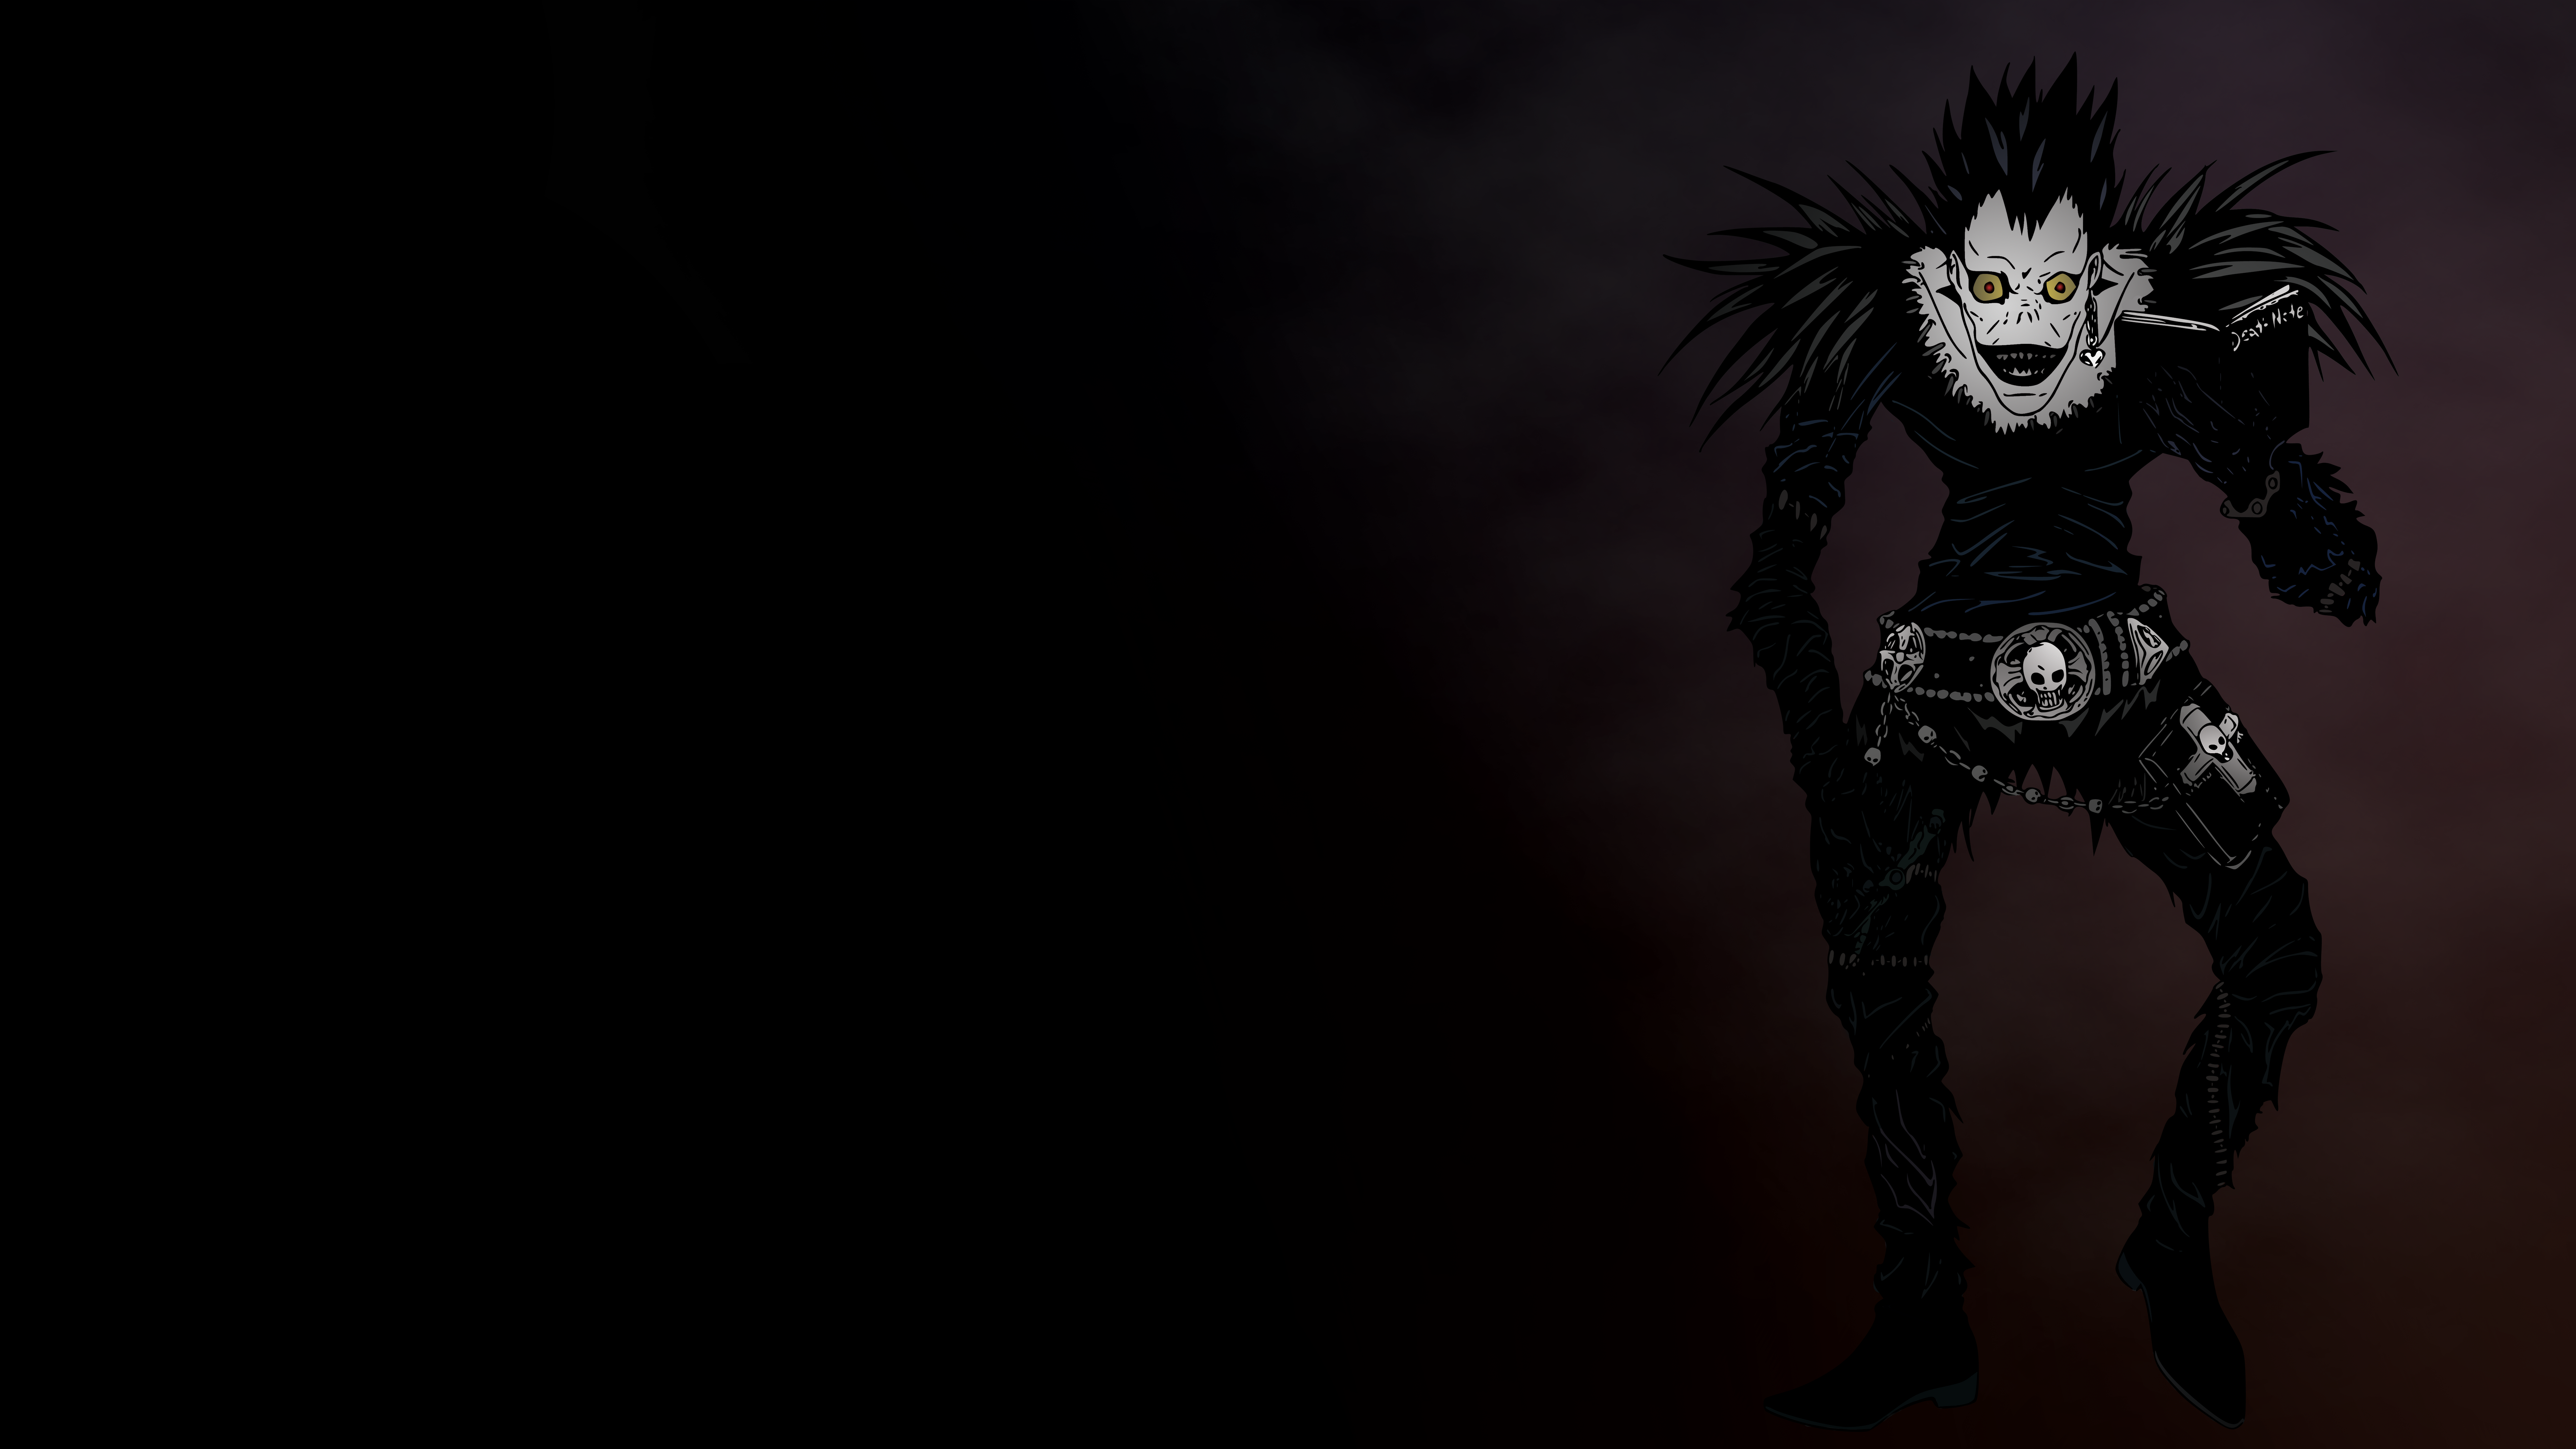 Death Note 8k Ultra Hd Wallpaper Background Image 7680x4320 Id 740508 Wallpaper Abyss